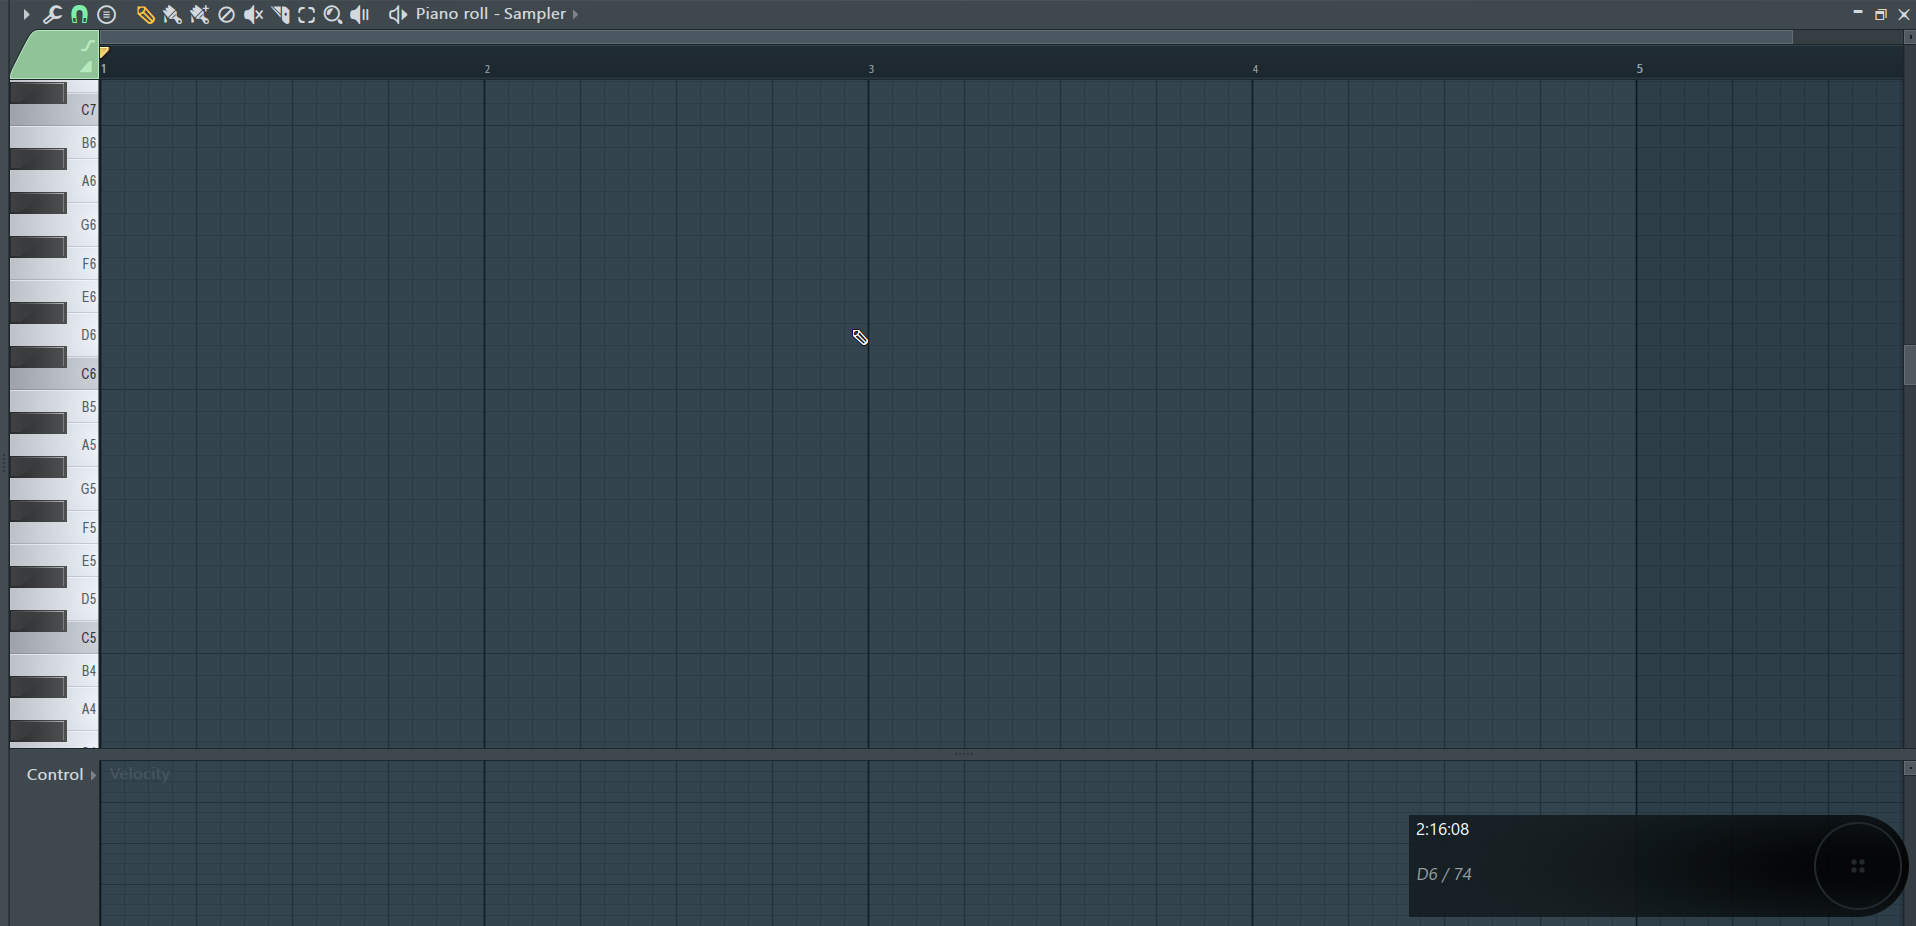 How To Change The Background Color Of FL Studio's Piano Roll